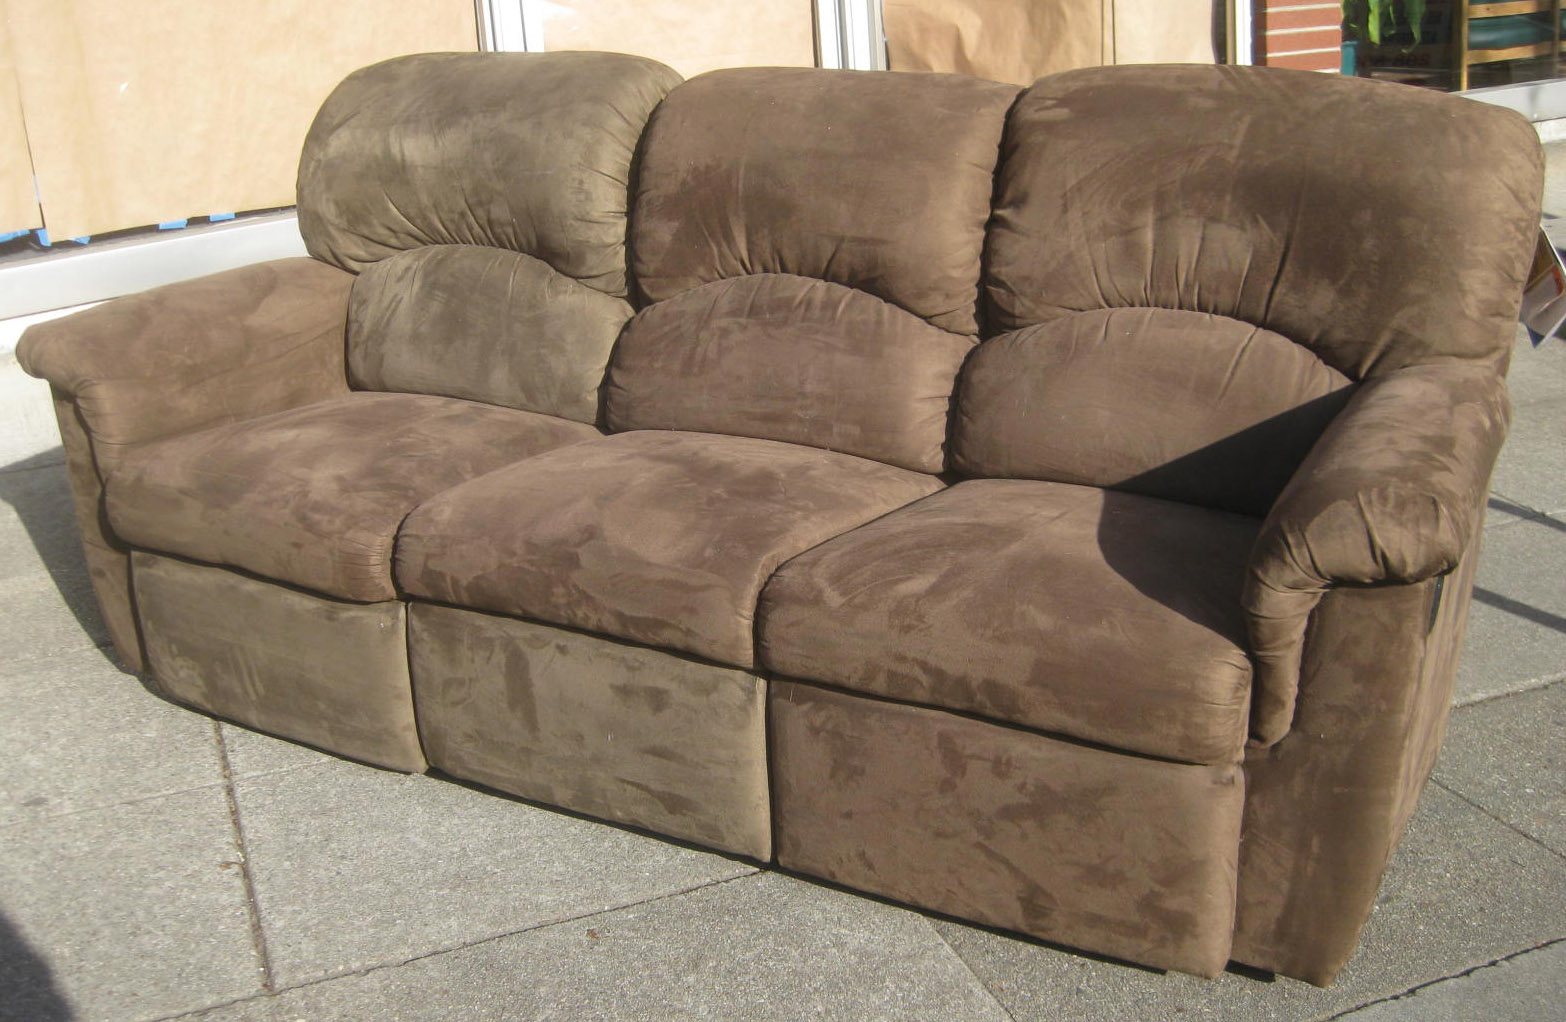 Uhuru furniture collectibles sold microsuede sofa for Suede furniture